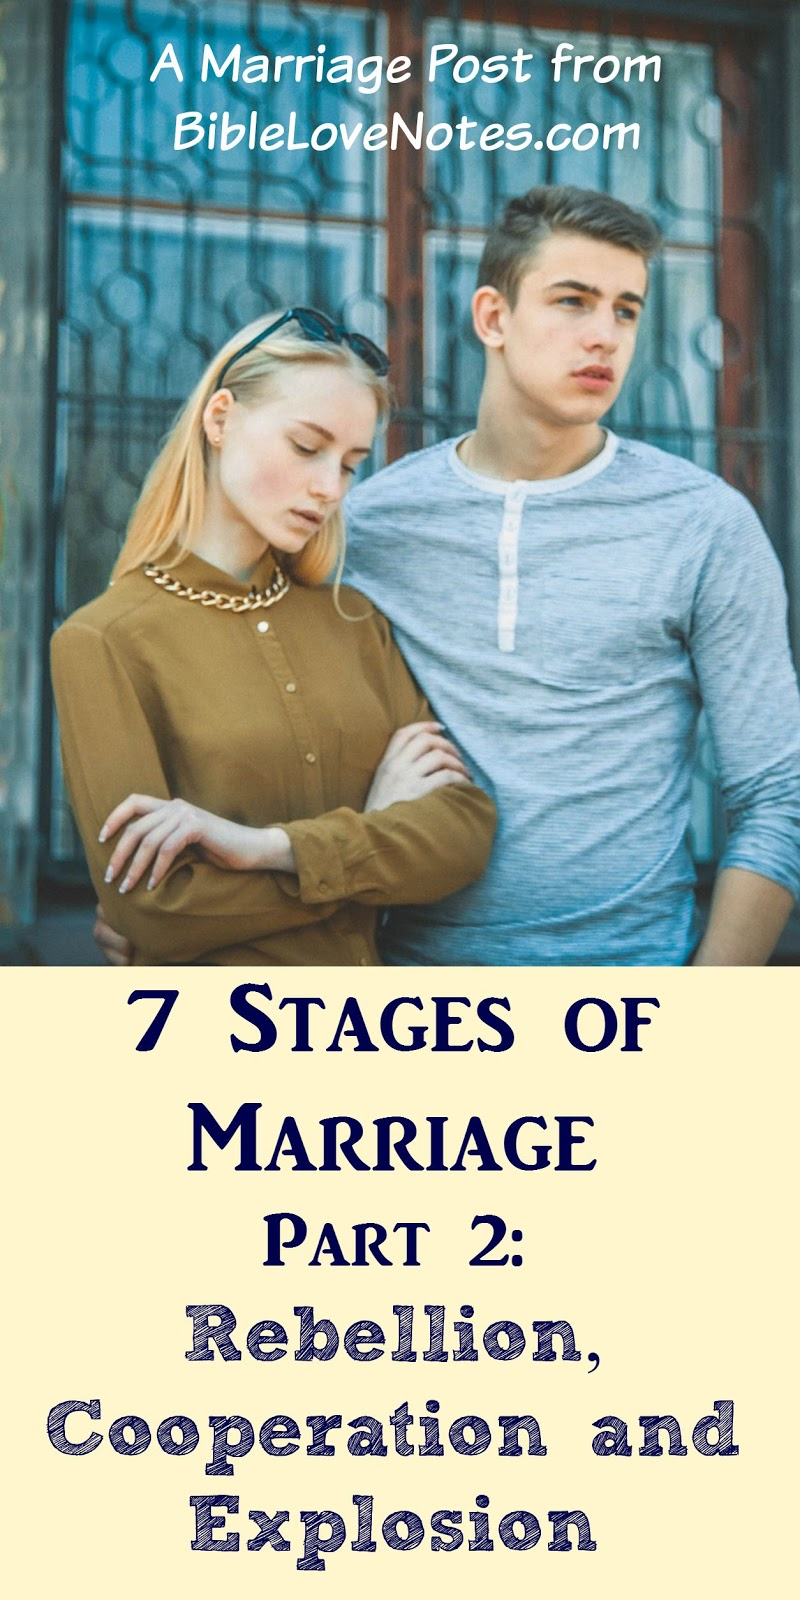 Christian dating stage 1